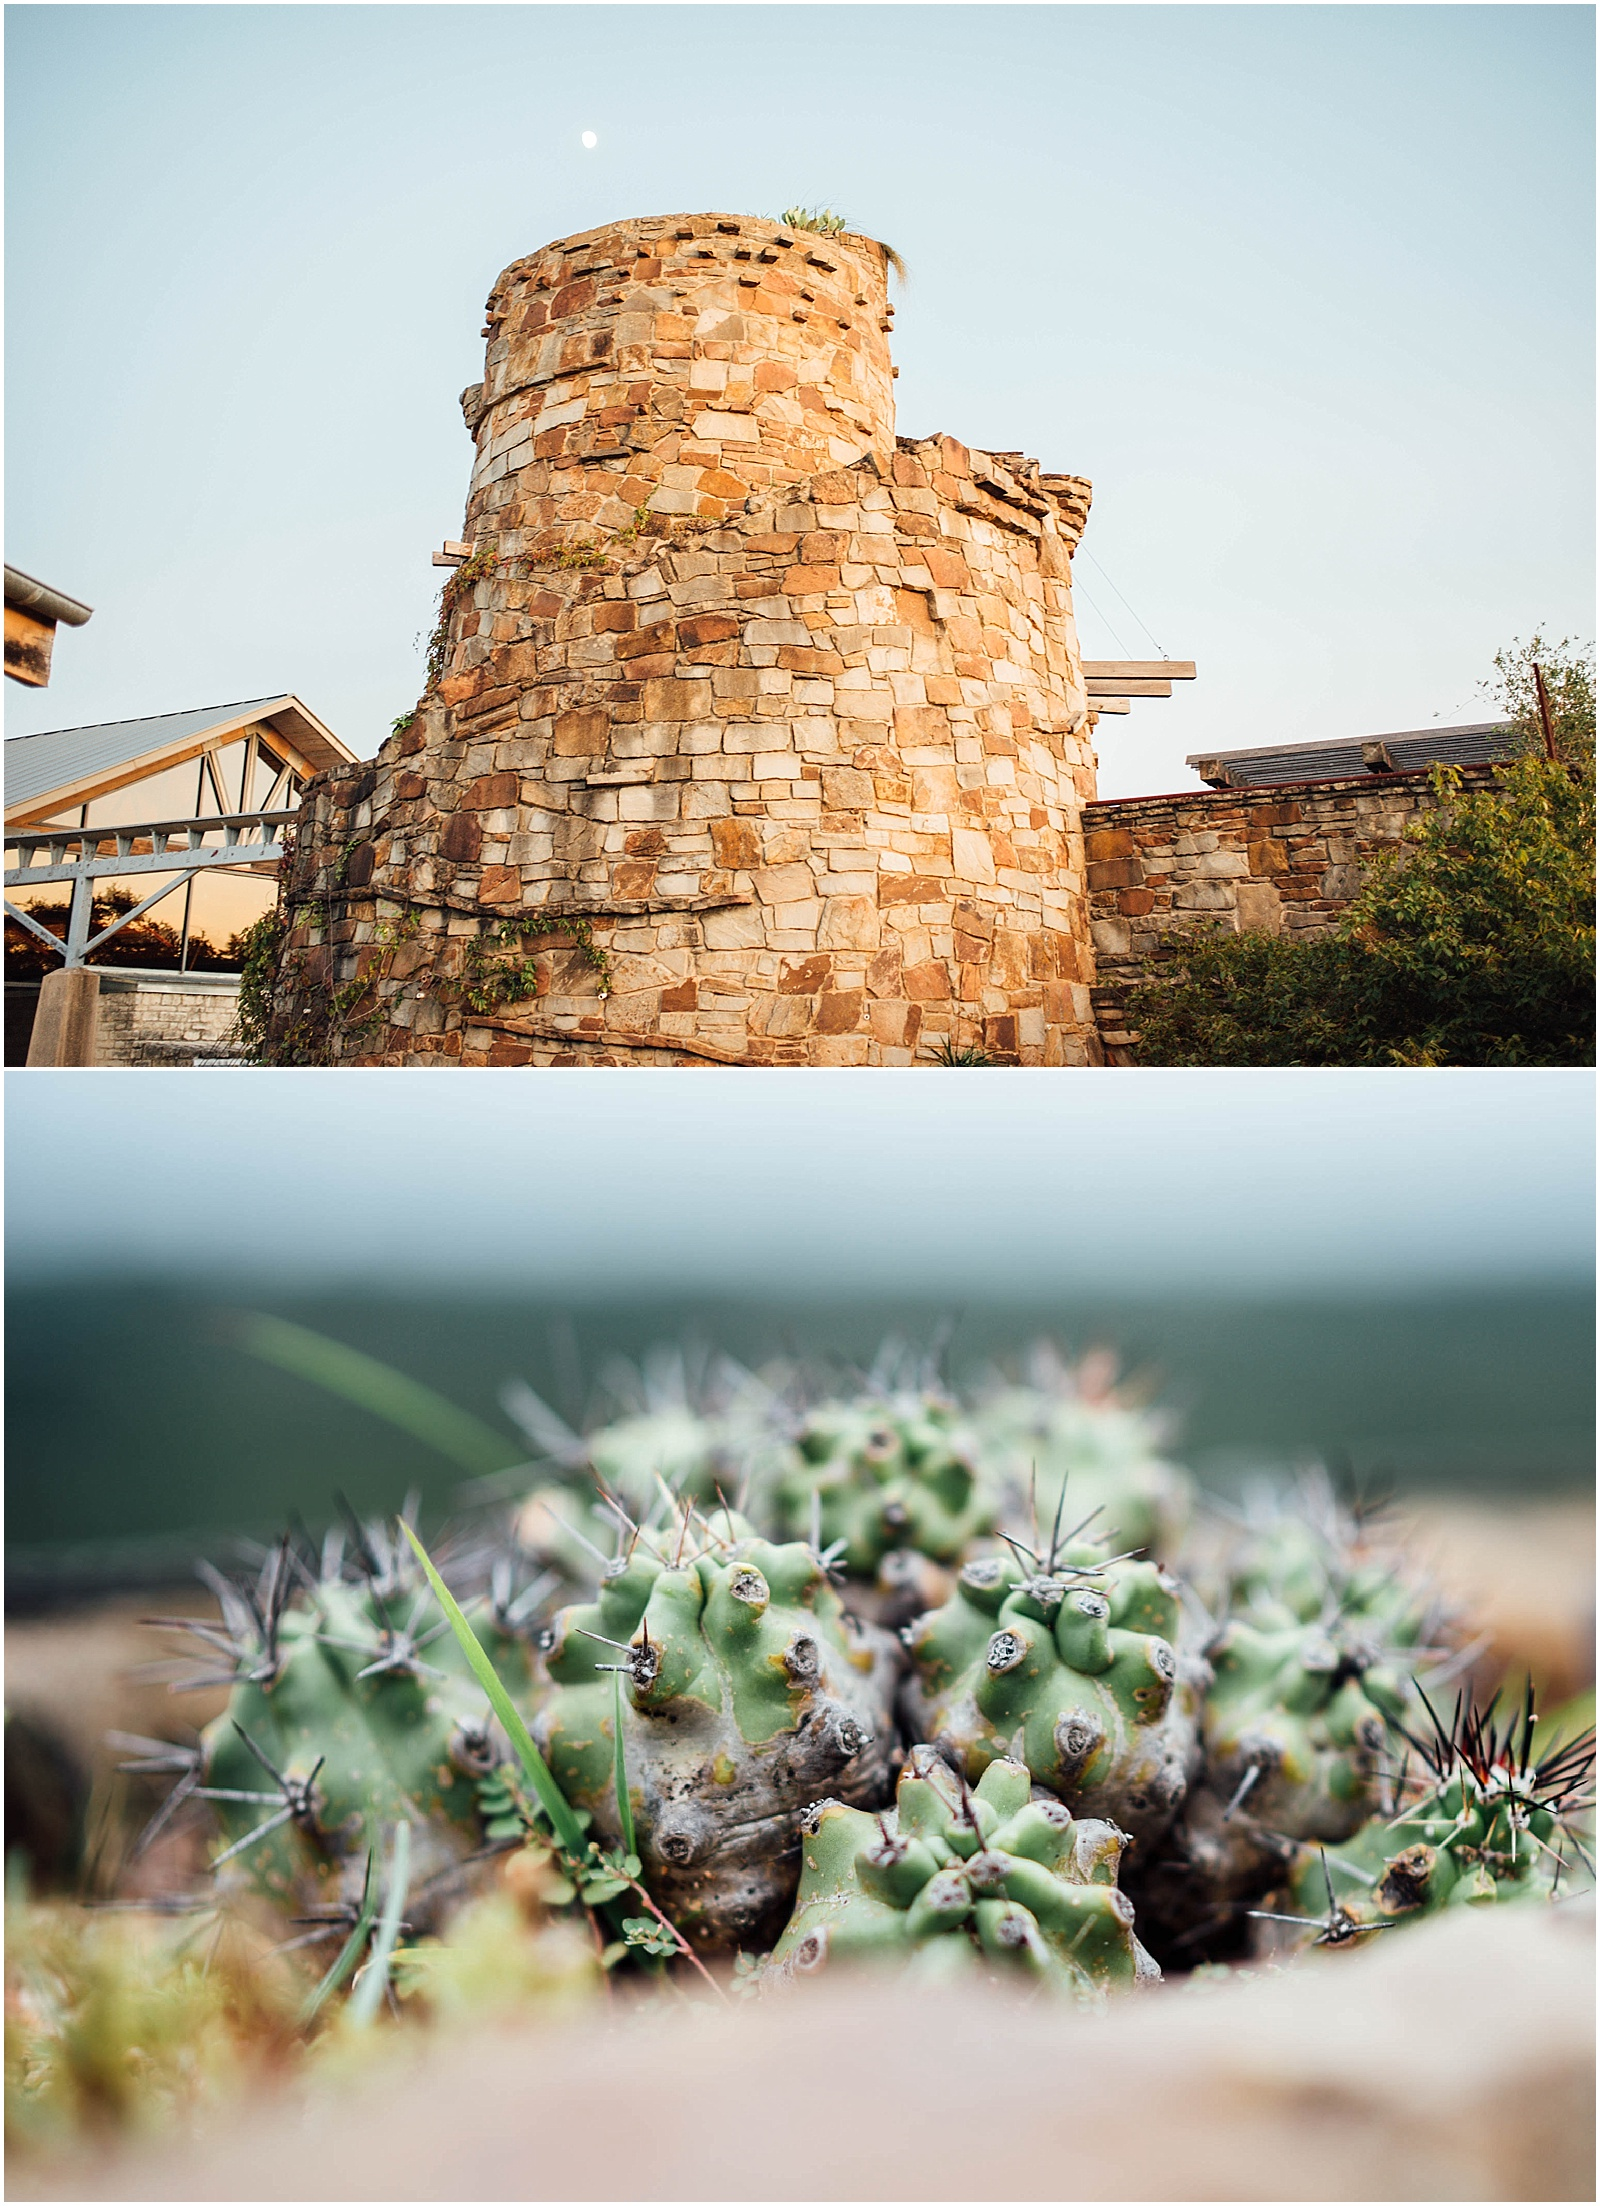 Stone Tower and Cactus Blush Pink Bridal Details at Lady Bird Johnson Wildflower Center Austin Texas Wedding